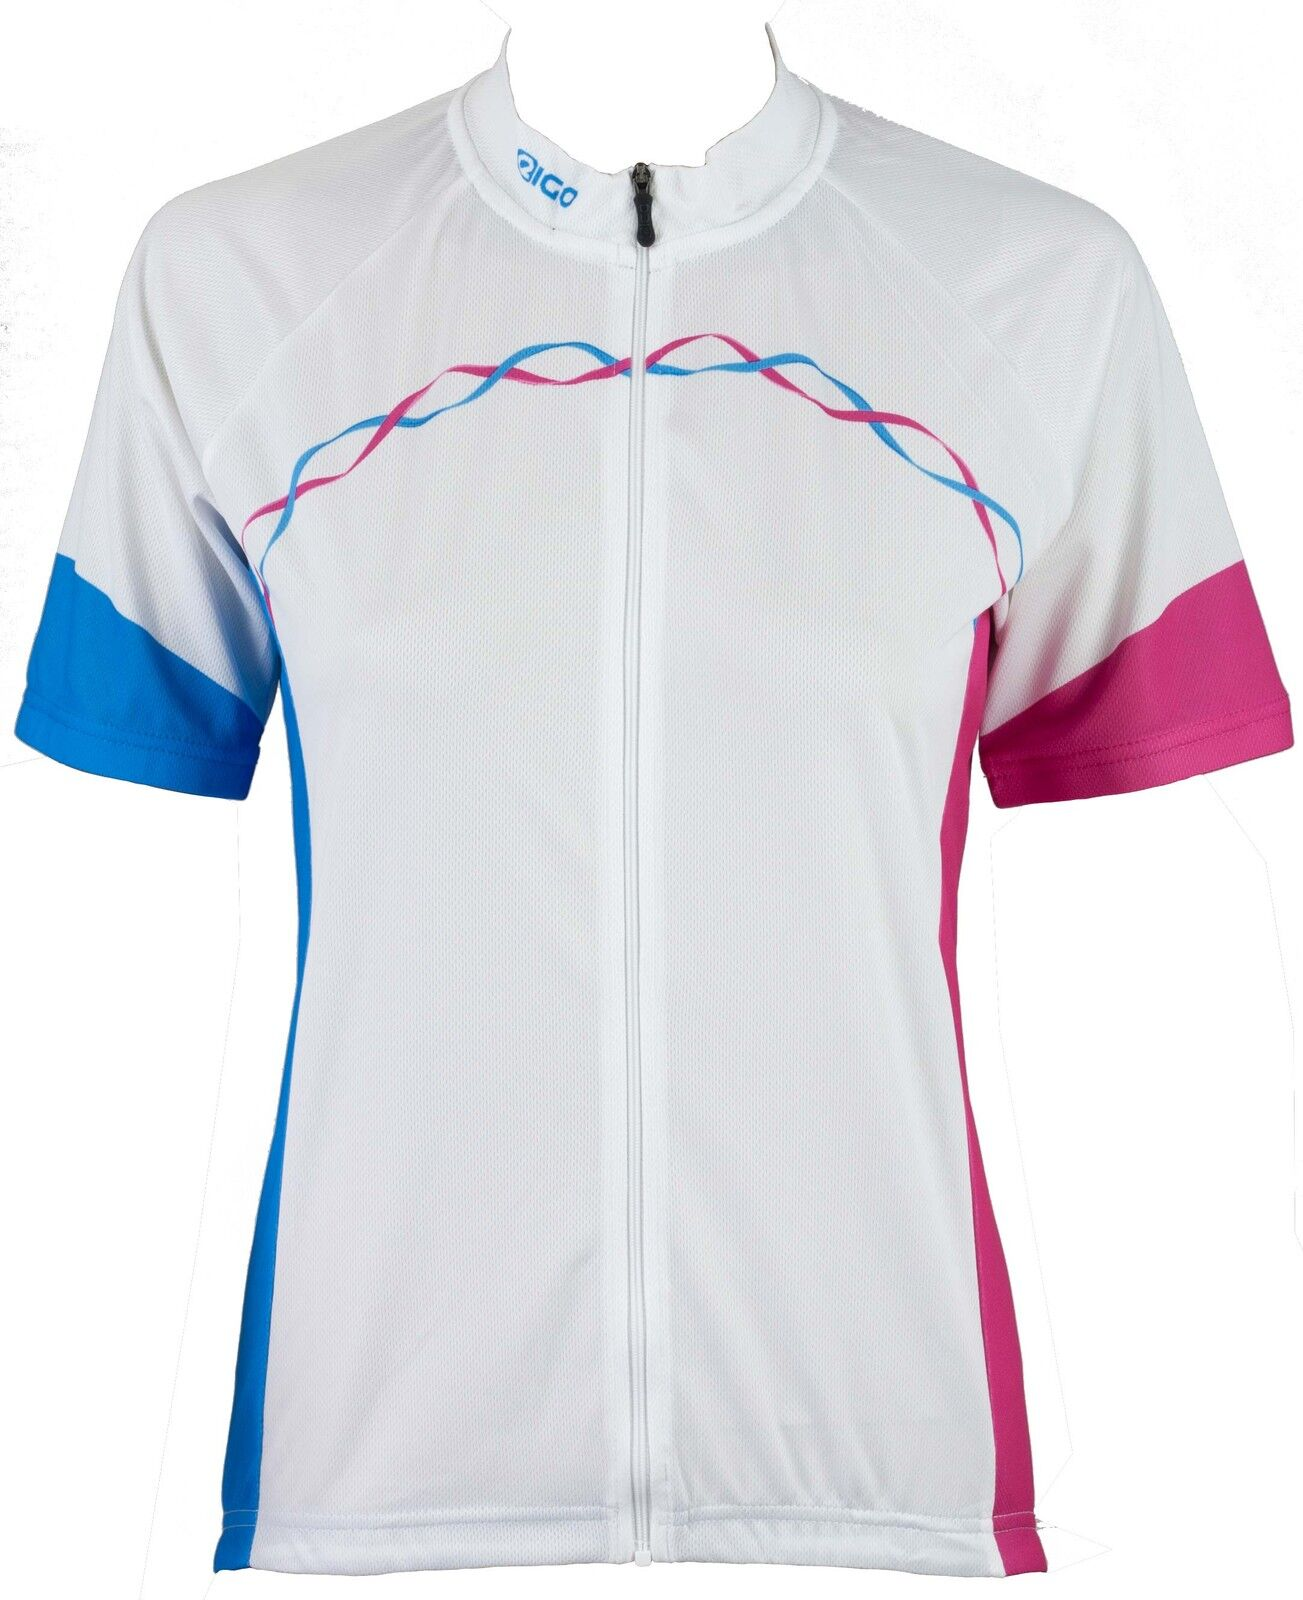 NEW EIGO RIBBON  MTB ALL ROAD XC BICYCLE CYCLING SHORT SLEEVE LADIES JERSEY WHITE  waiting for you